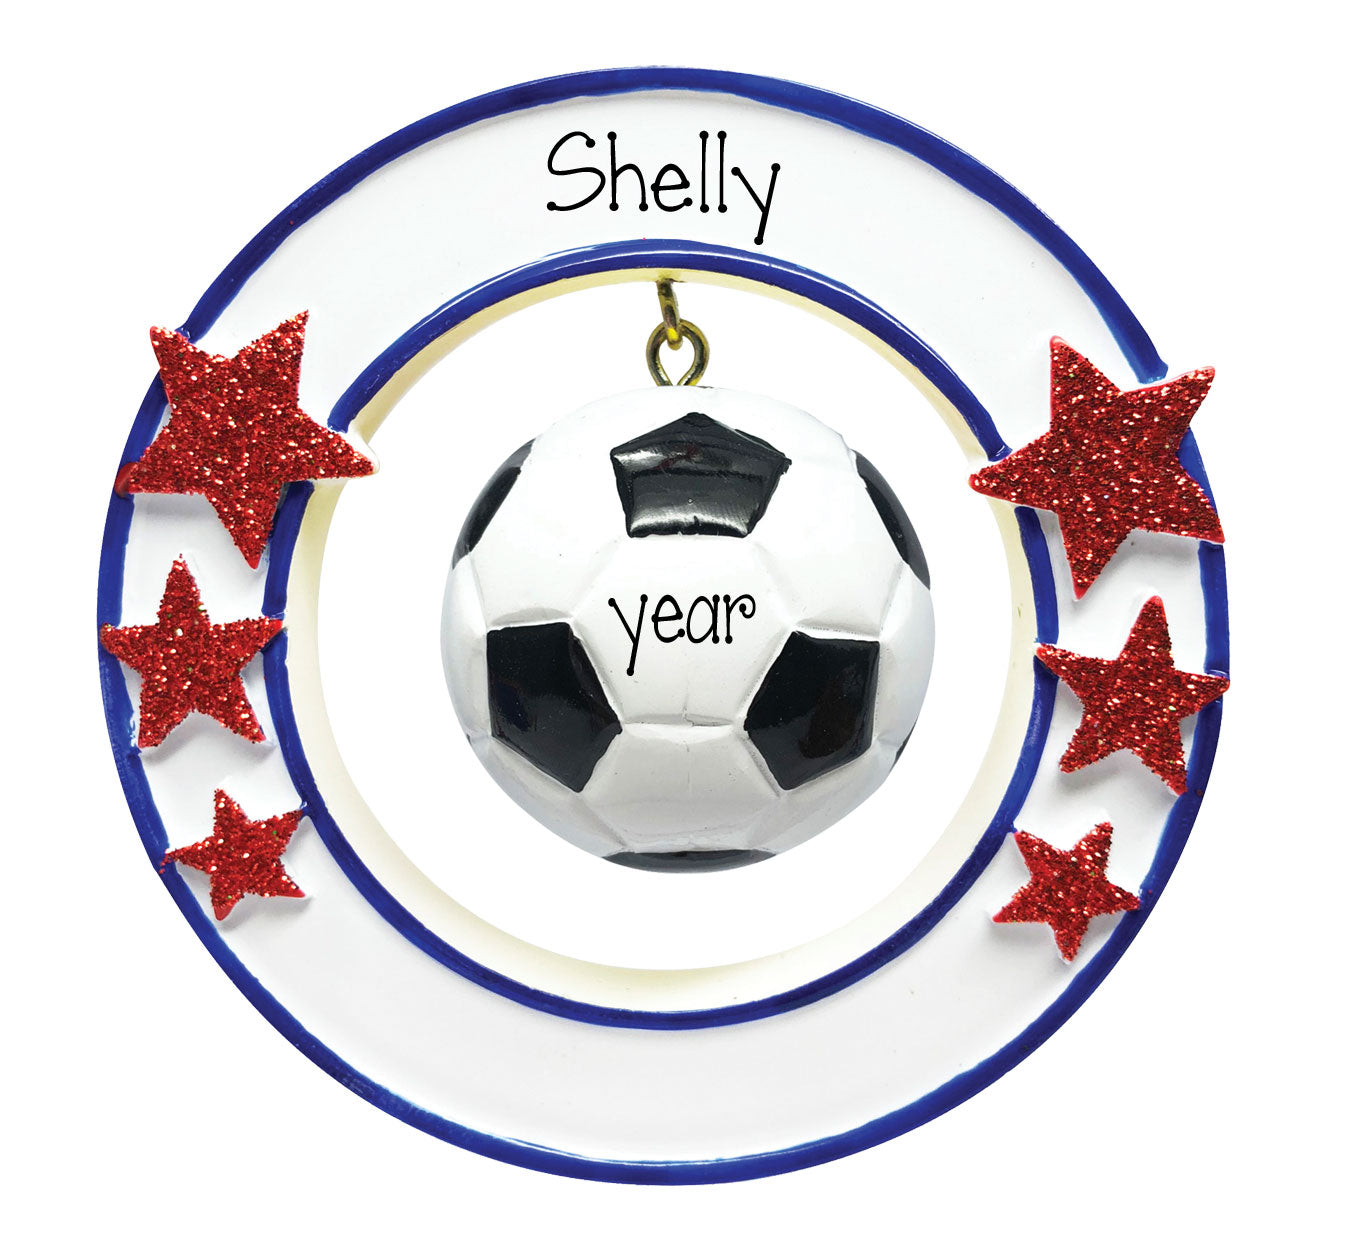 soccer hanging in a circle with red glitter starspersonalized ornament